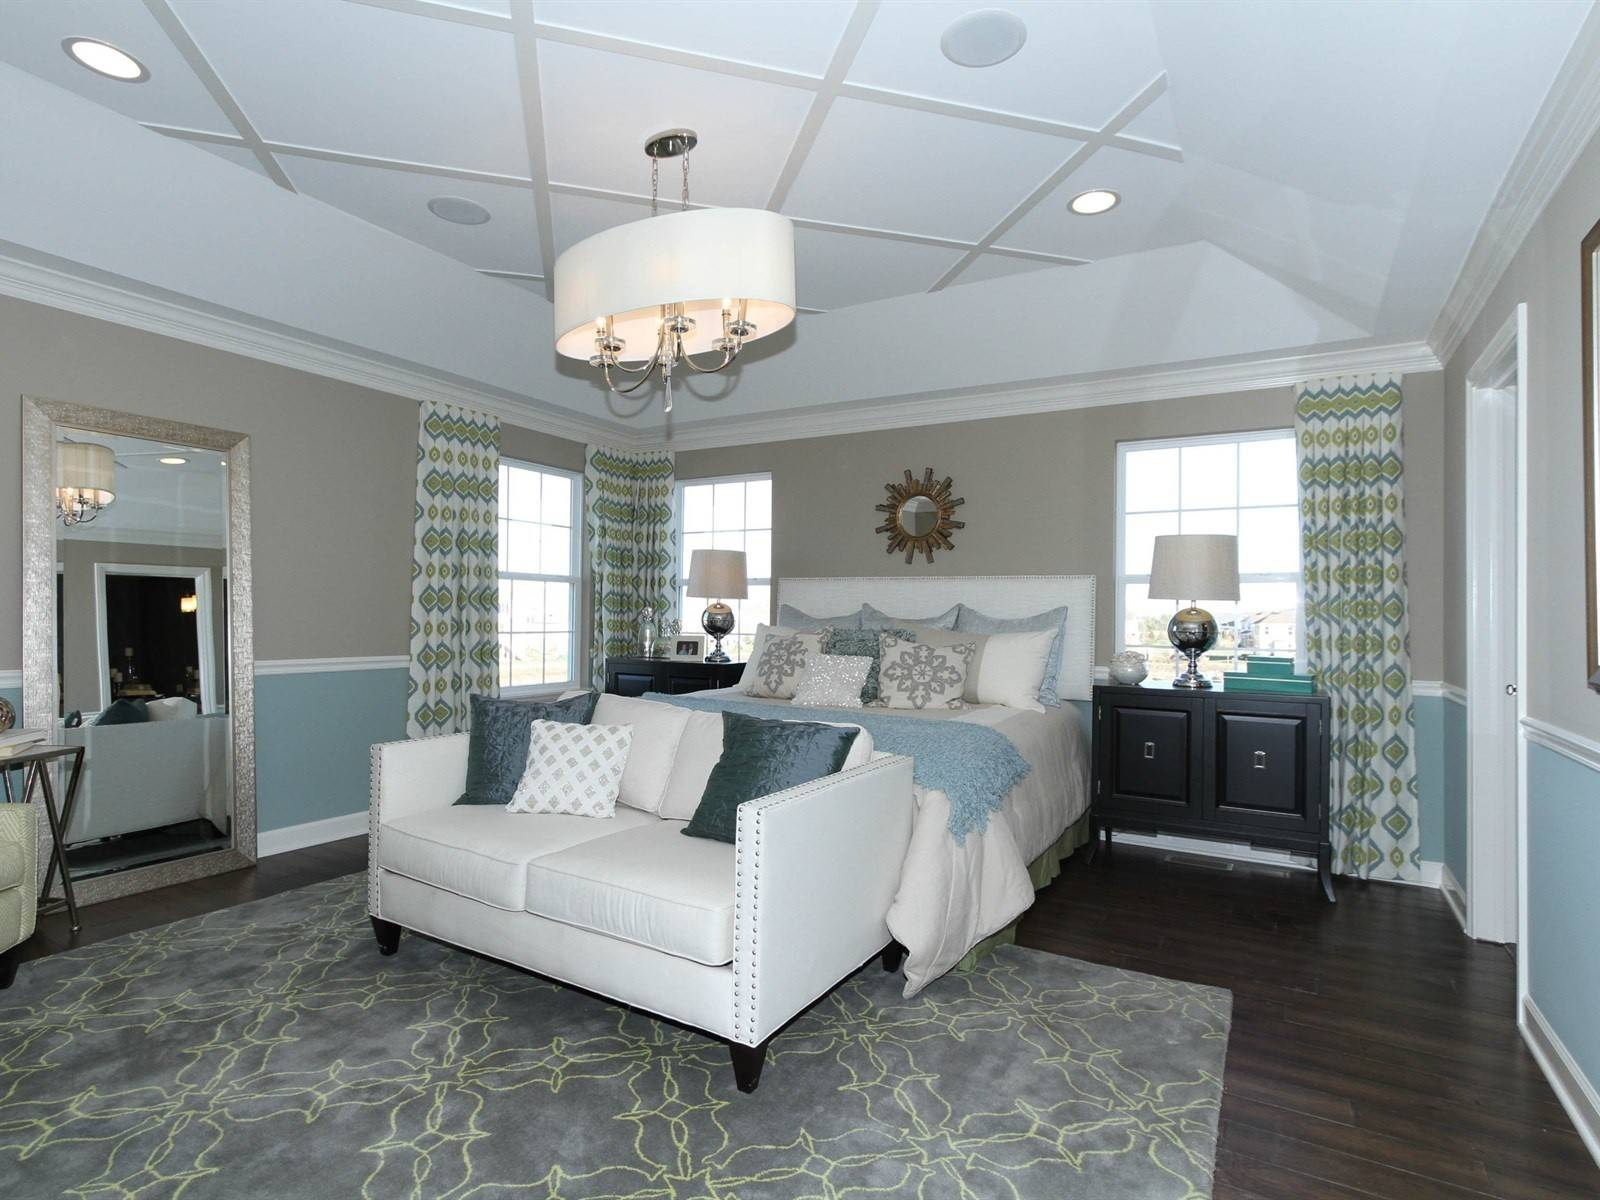 The tray ceiling in the Columbus model at Mayfair features a diamond pattern and chandelier, which is a popular decorative item in master suites now.